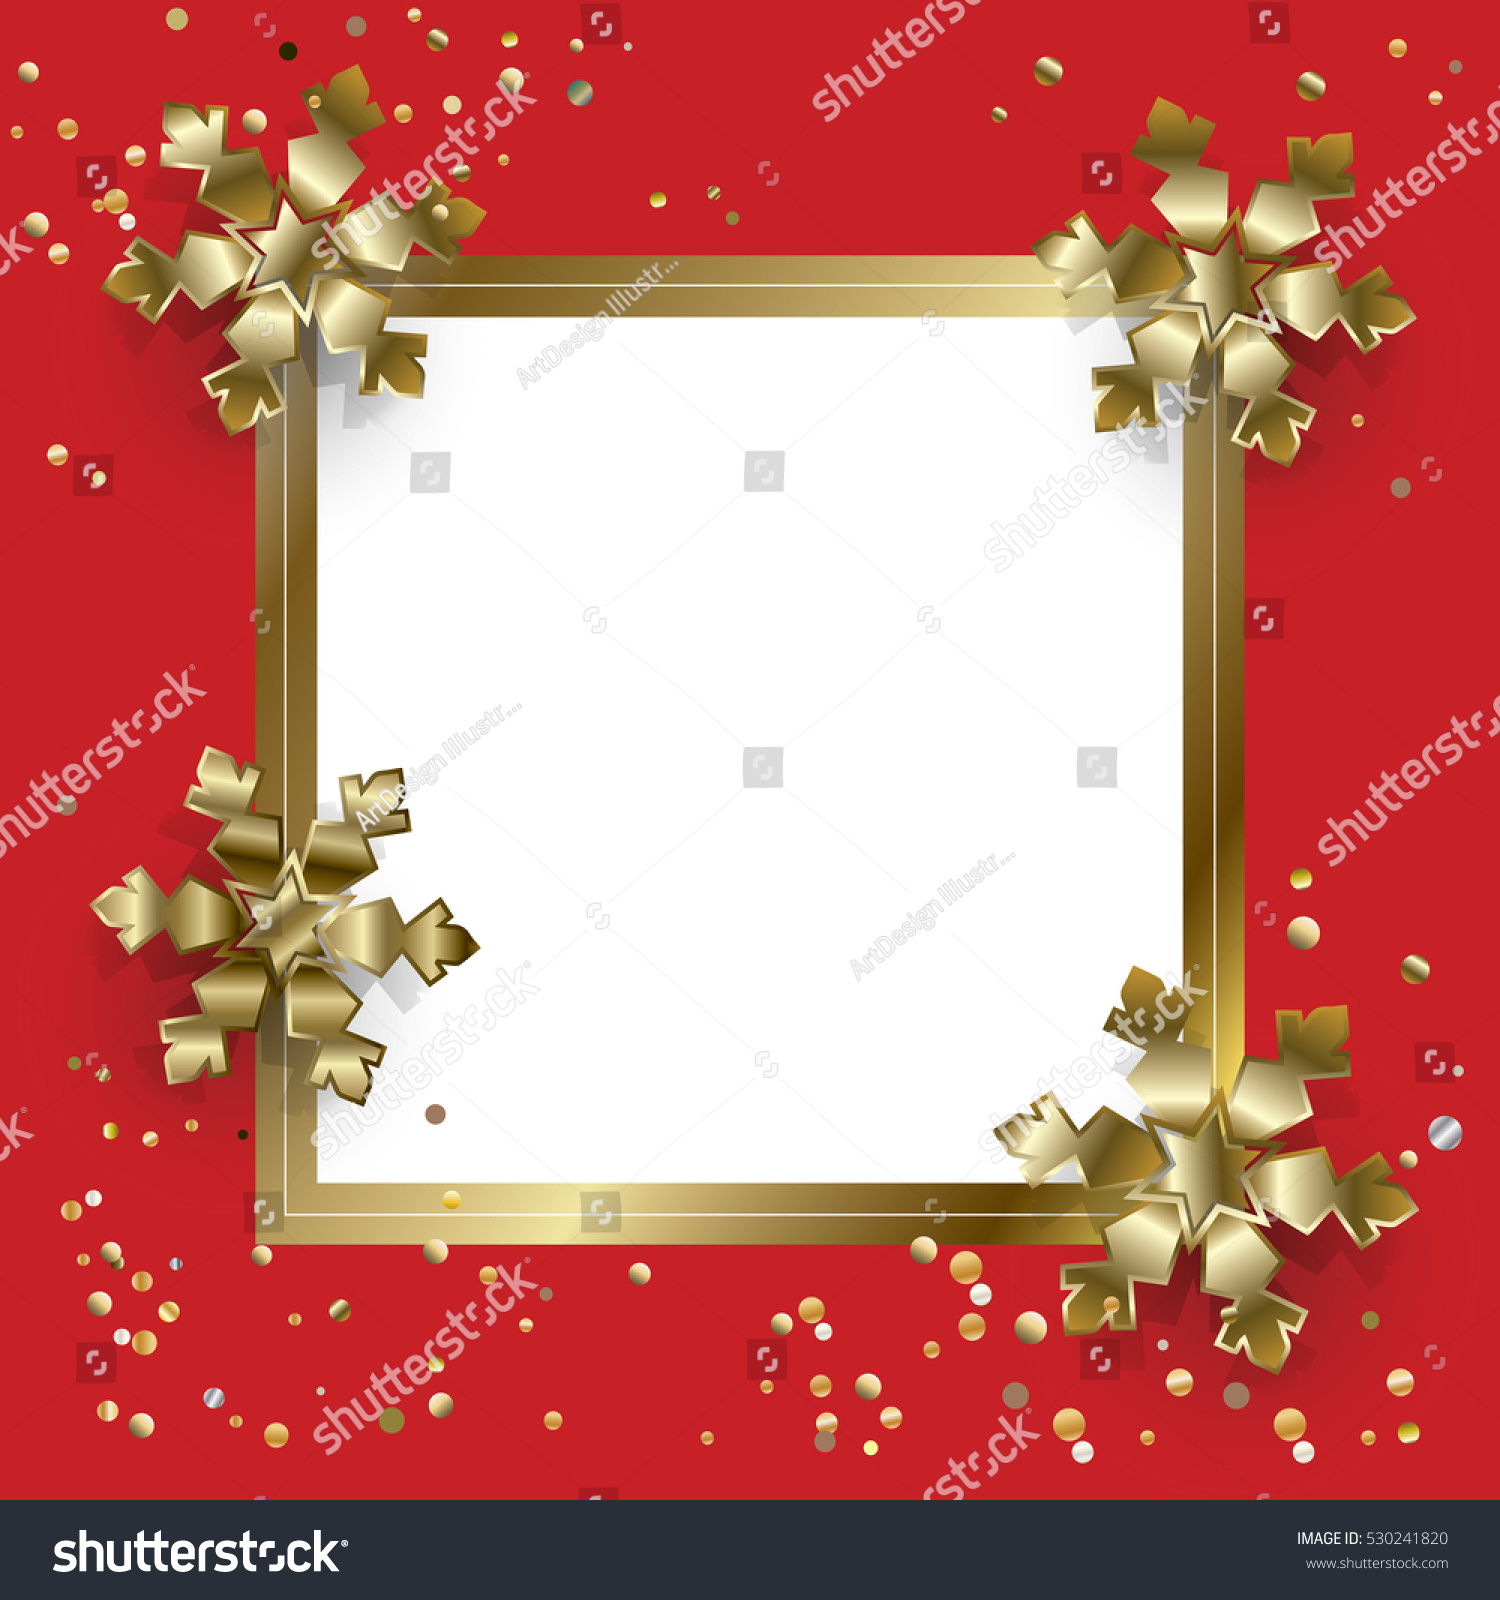 the gold glitter winter holiday border frame in shape of the - Ideal ...